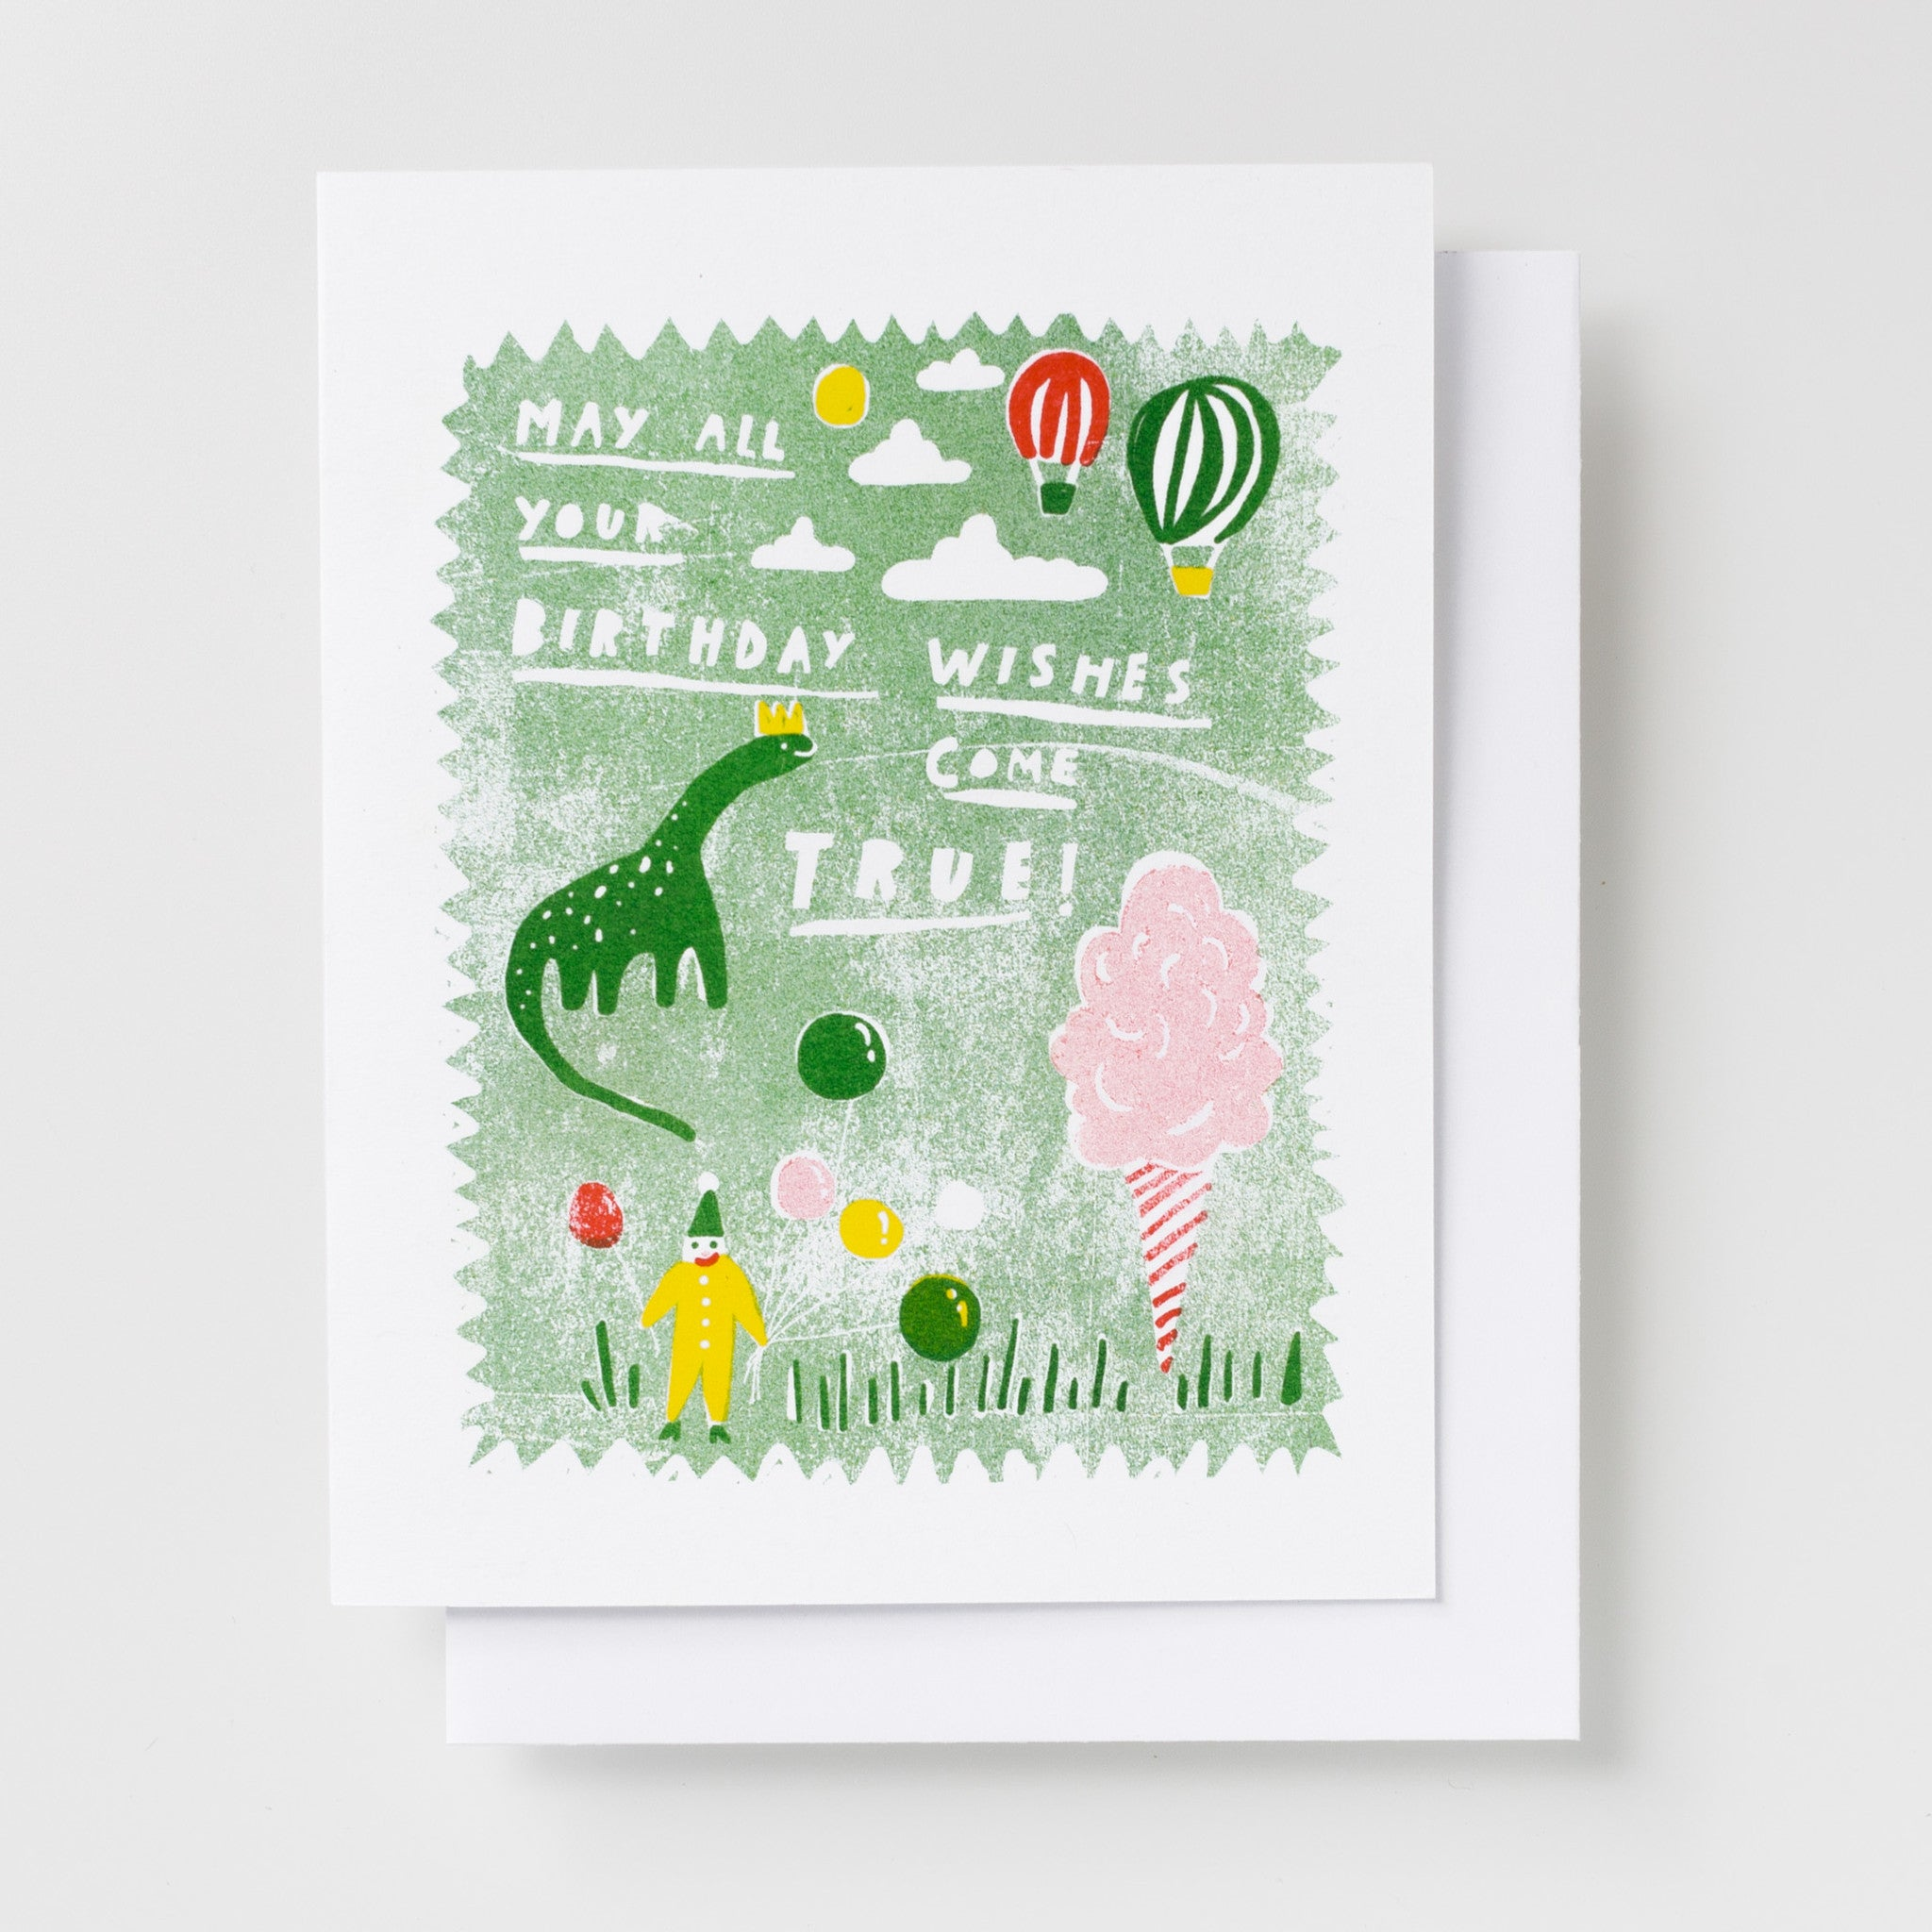 Dino Birthday Wishes - Risograph Card